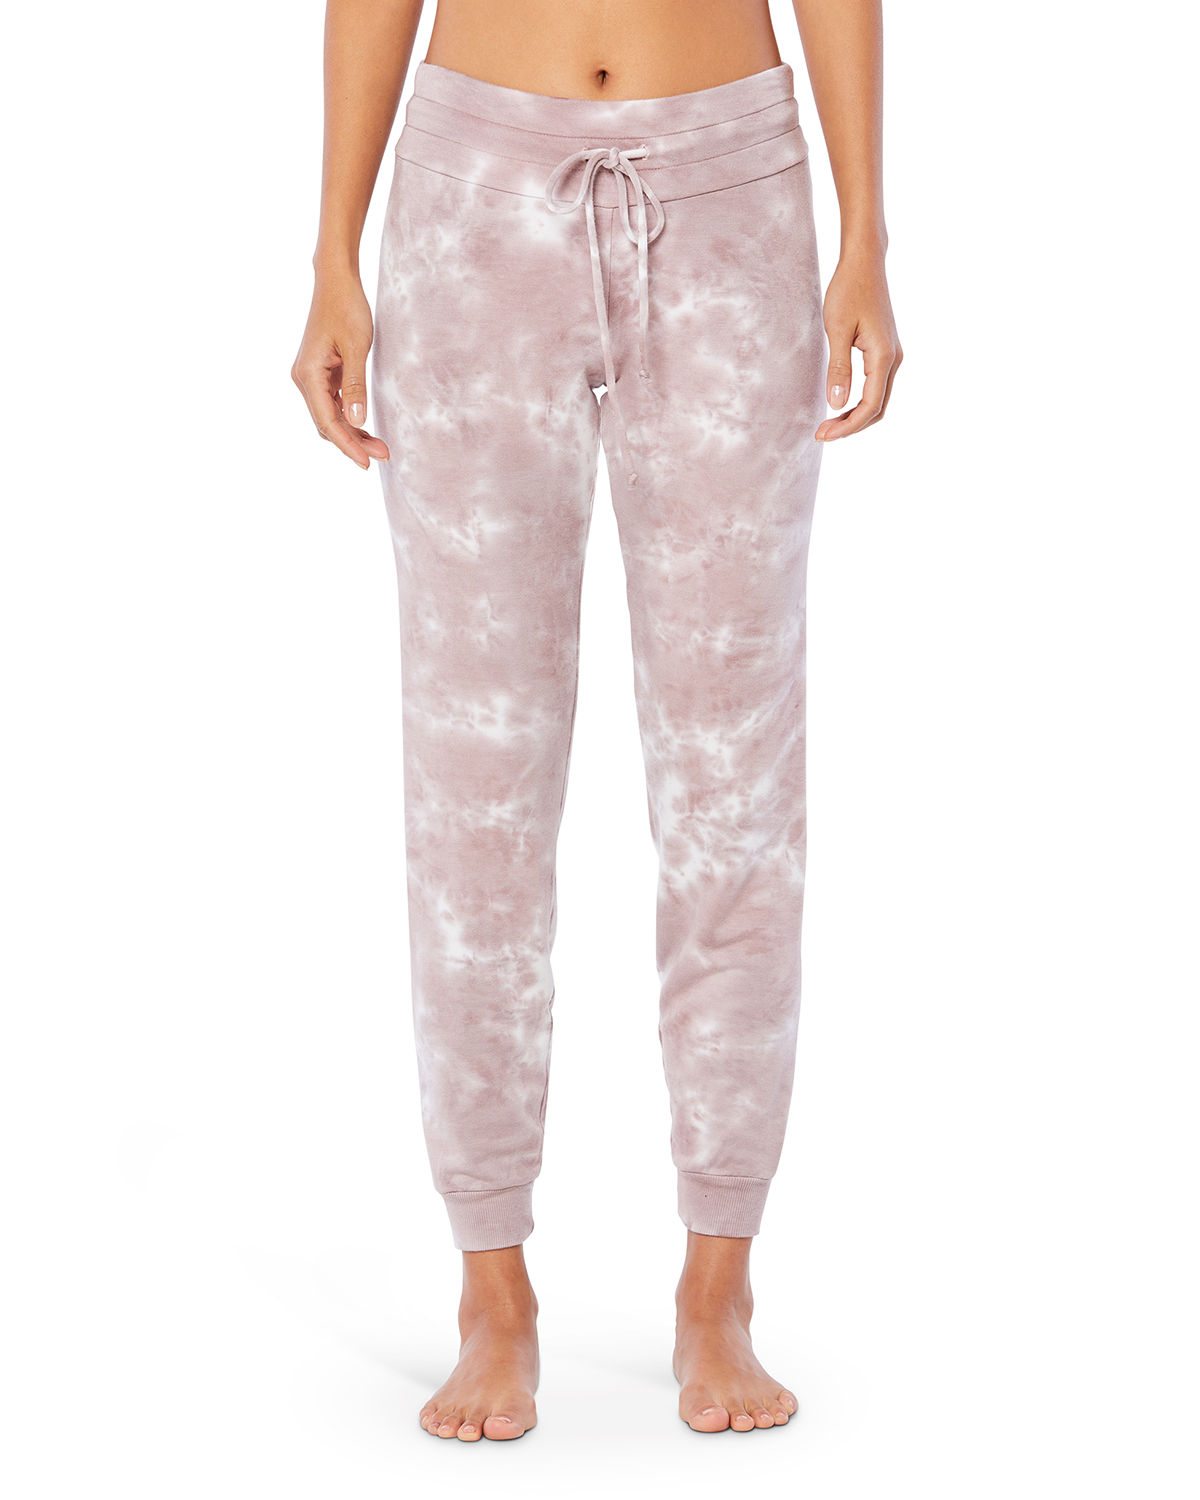 Day to Day Tie-Dye Sweatpants